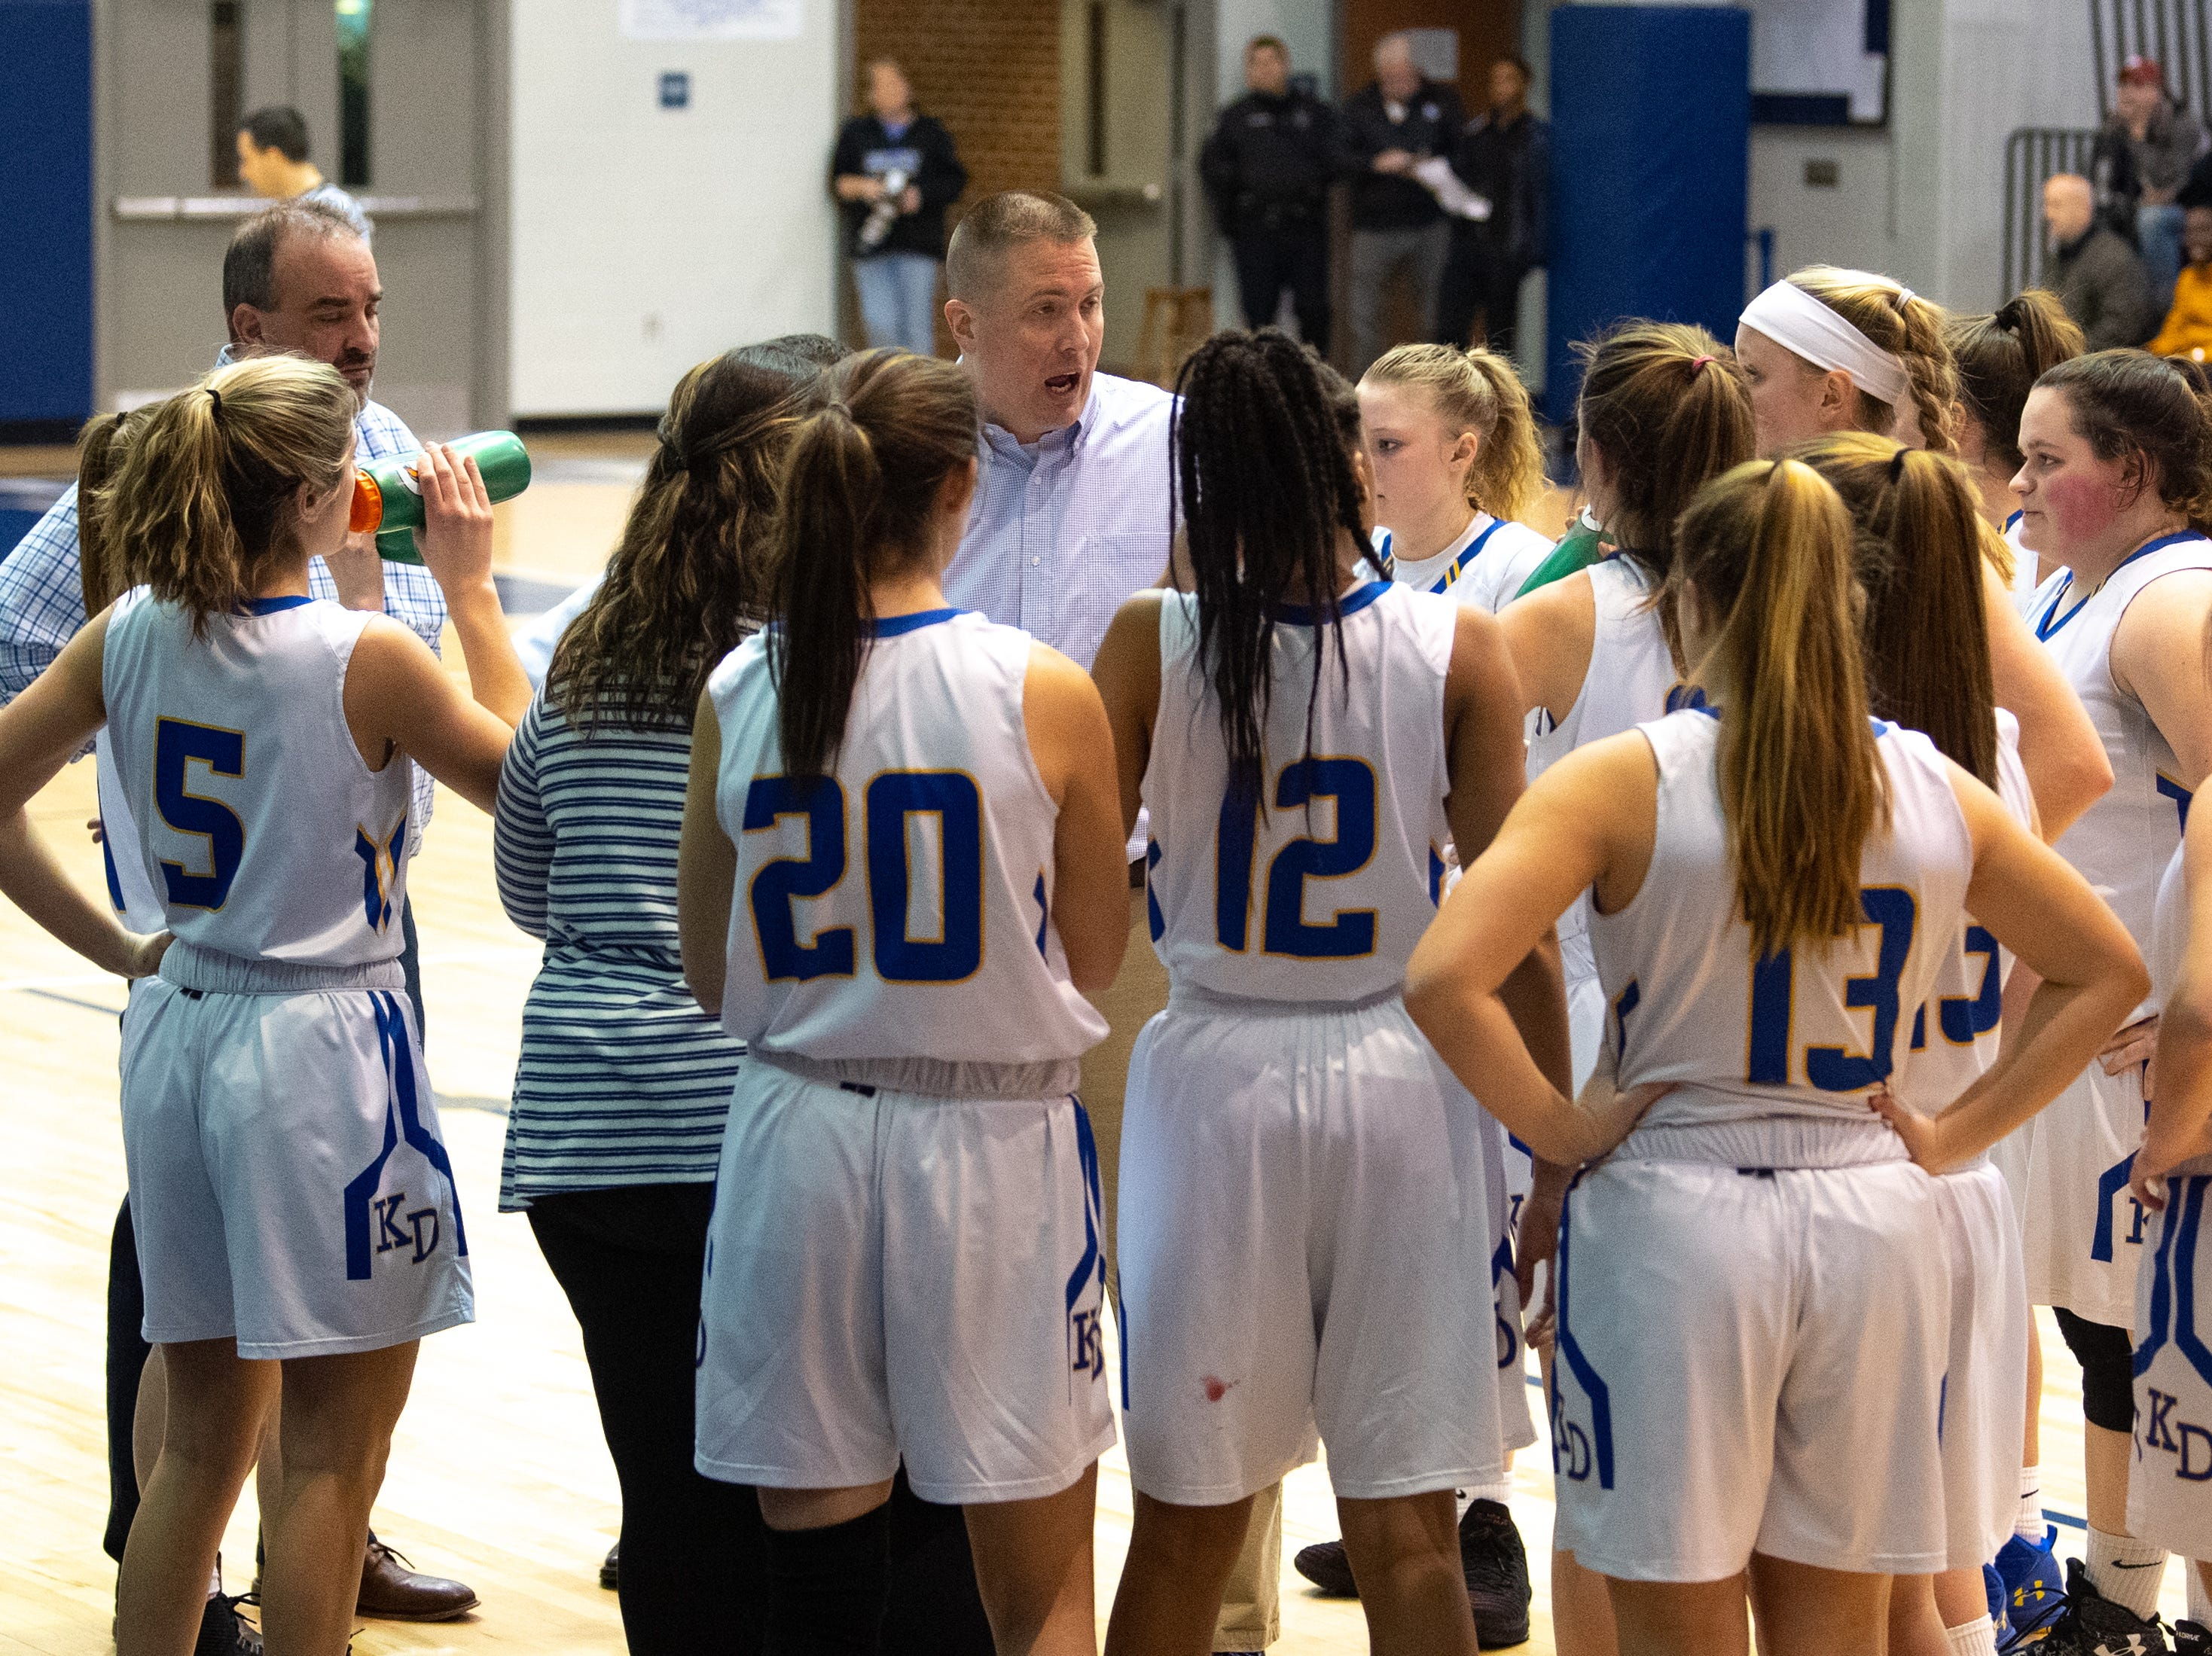 Kennard-Dale talks strategy during the YAIAA girls' basketball quarterfinal game between Spring Grove and Kennard-Dale, February 8, 2019 at Dallastown Area High School. The Rockets defeated the Rams 47 to 38.